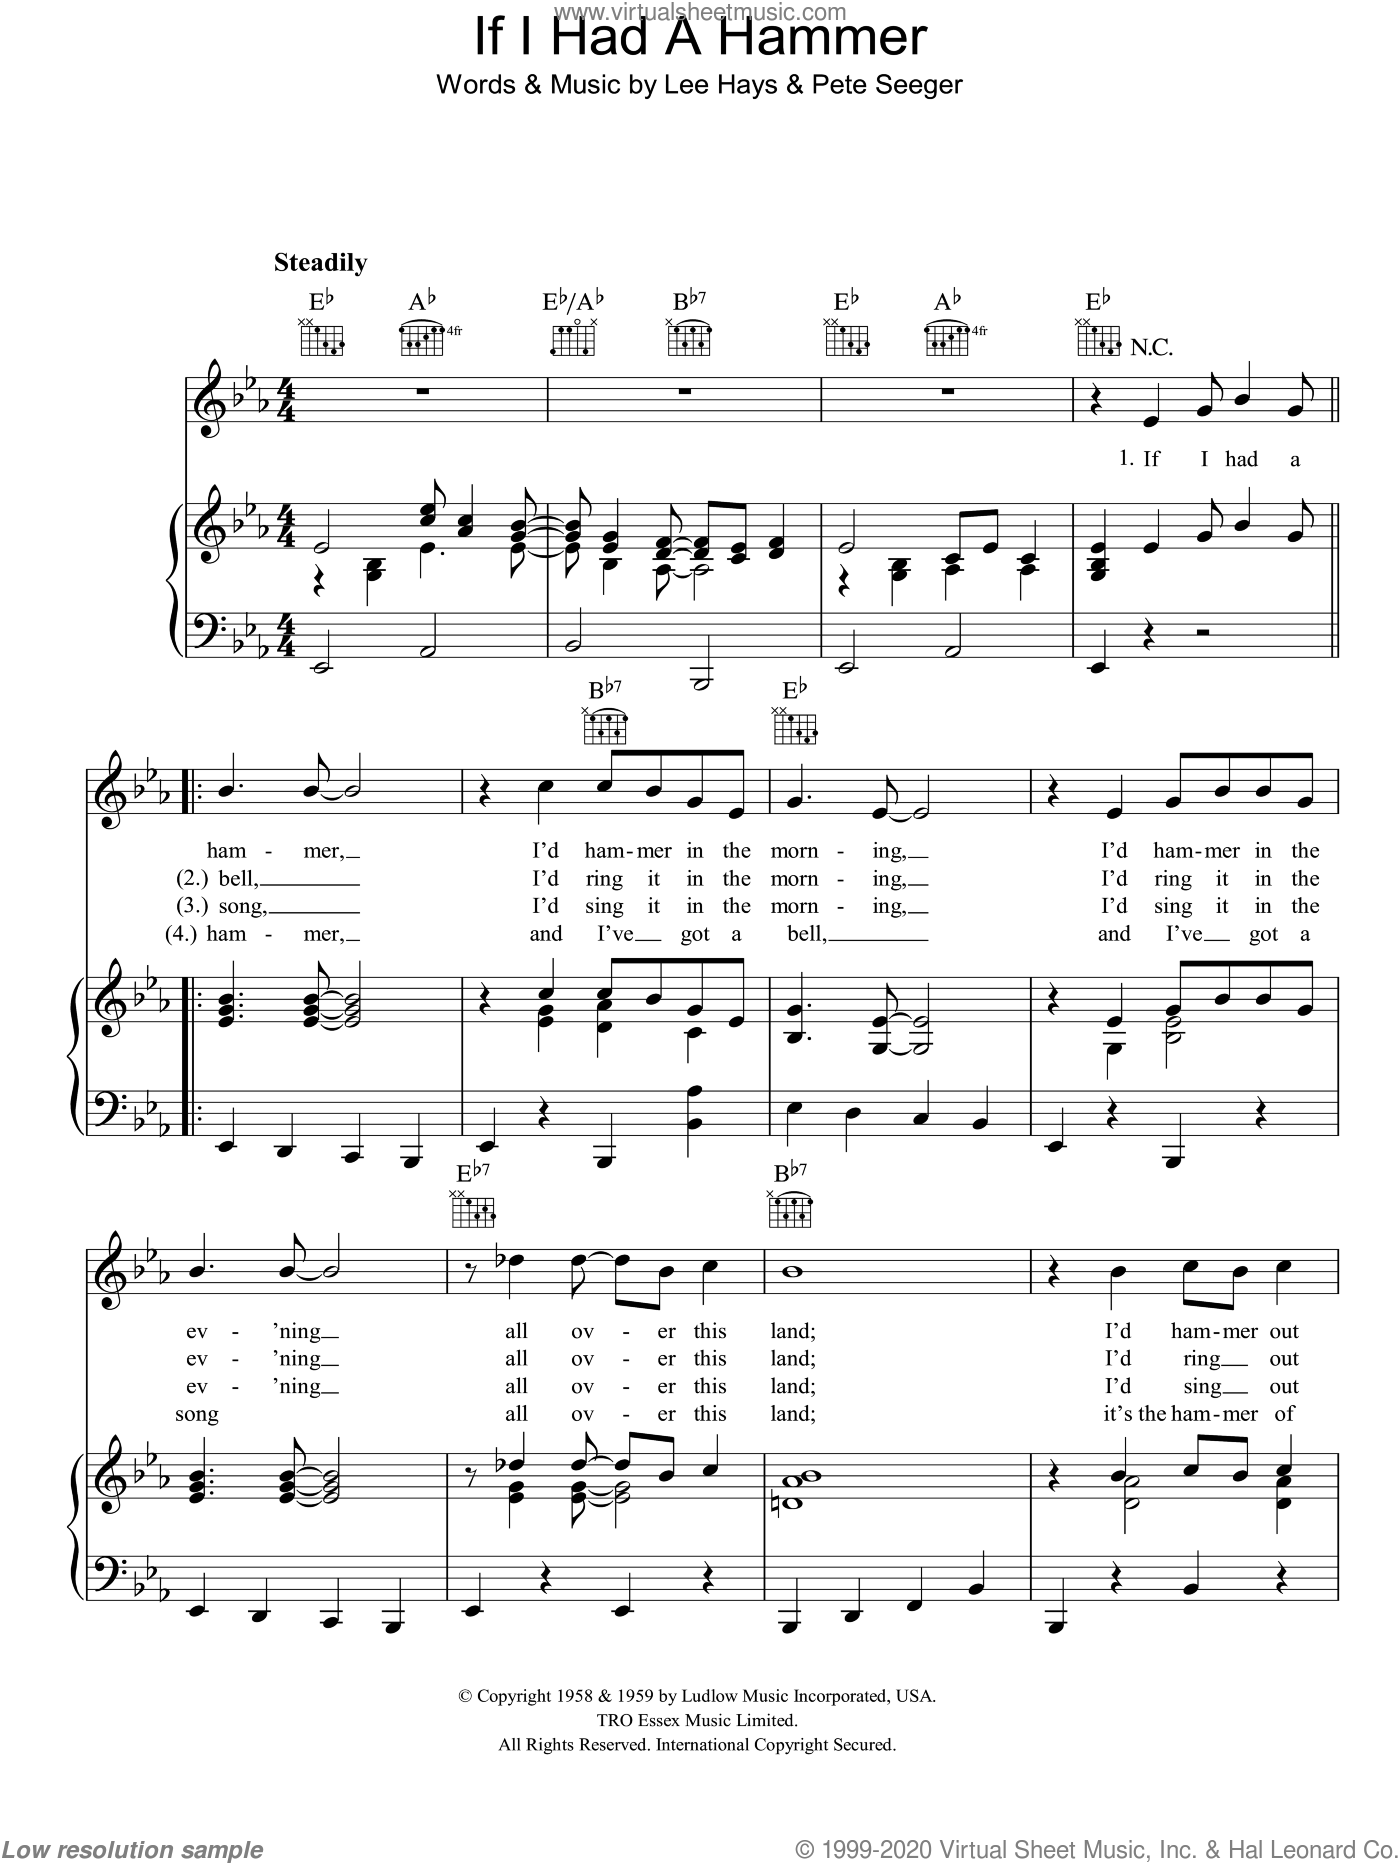 If I Had A Hammer sheet music for voice, piano or guitar by Lee Hays